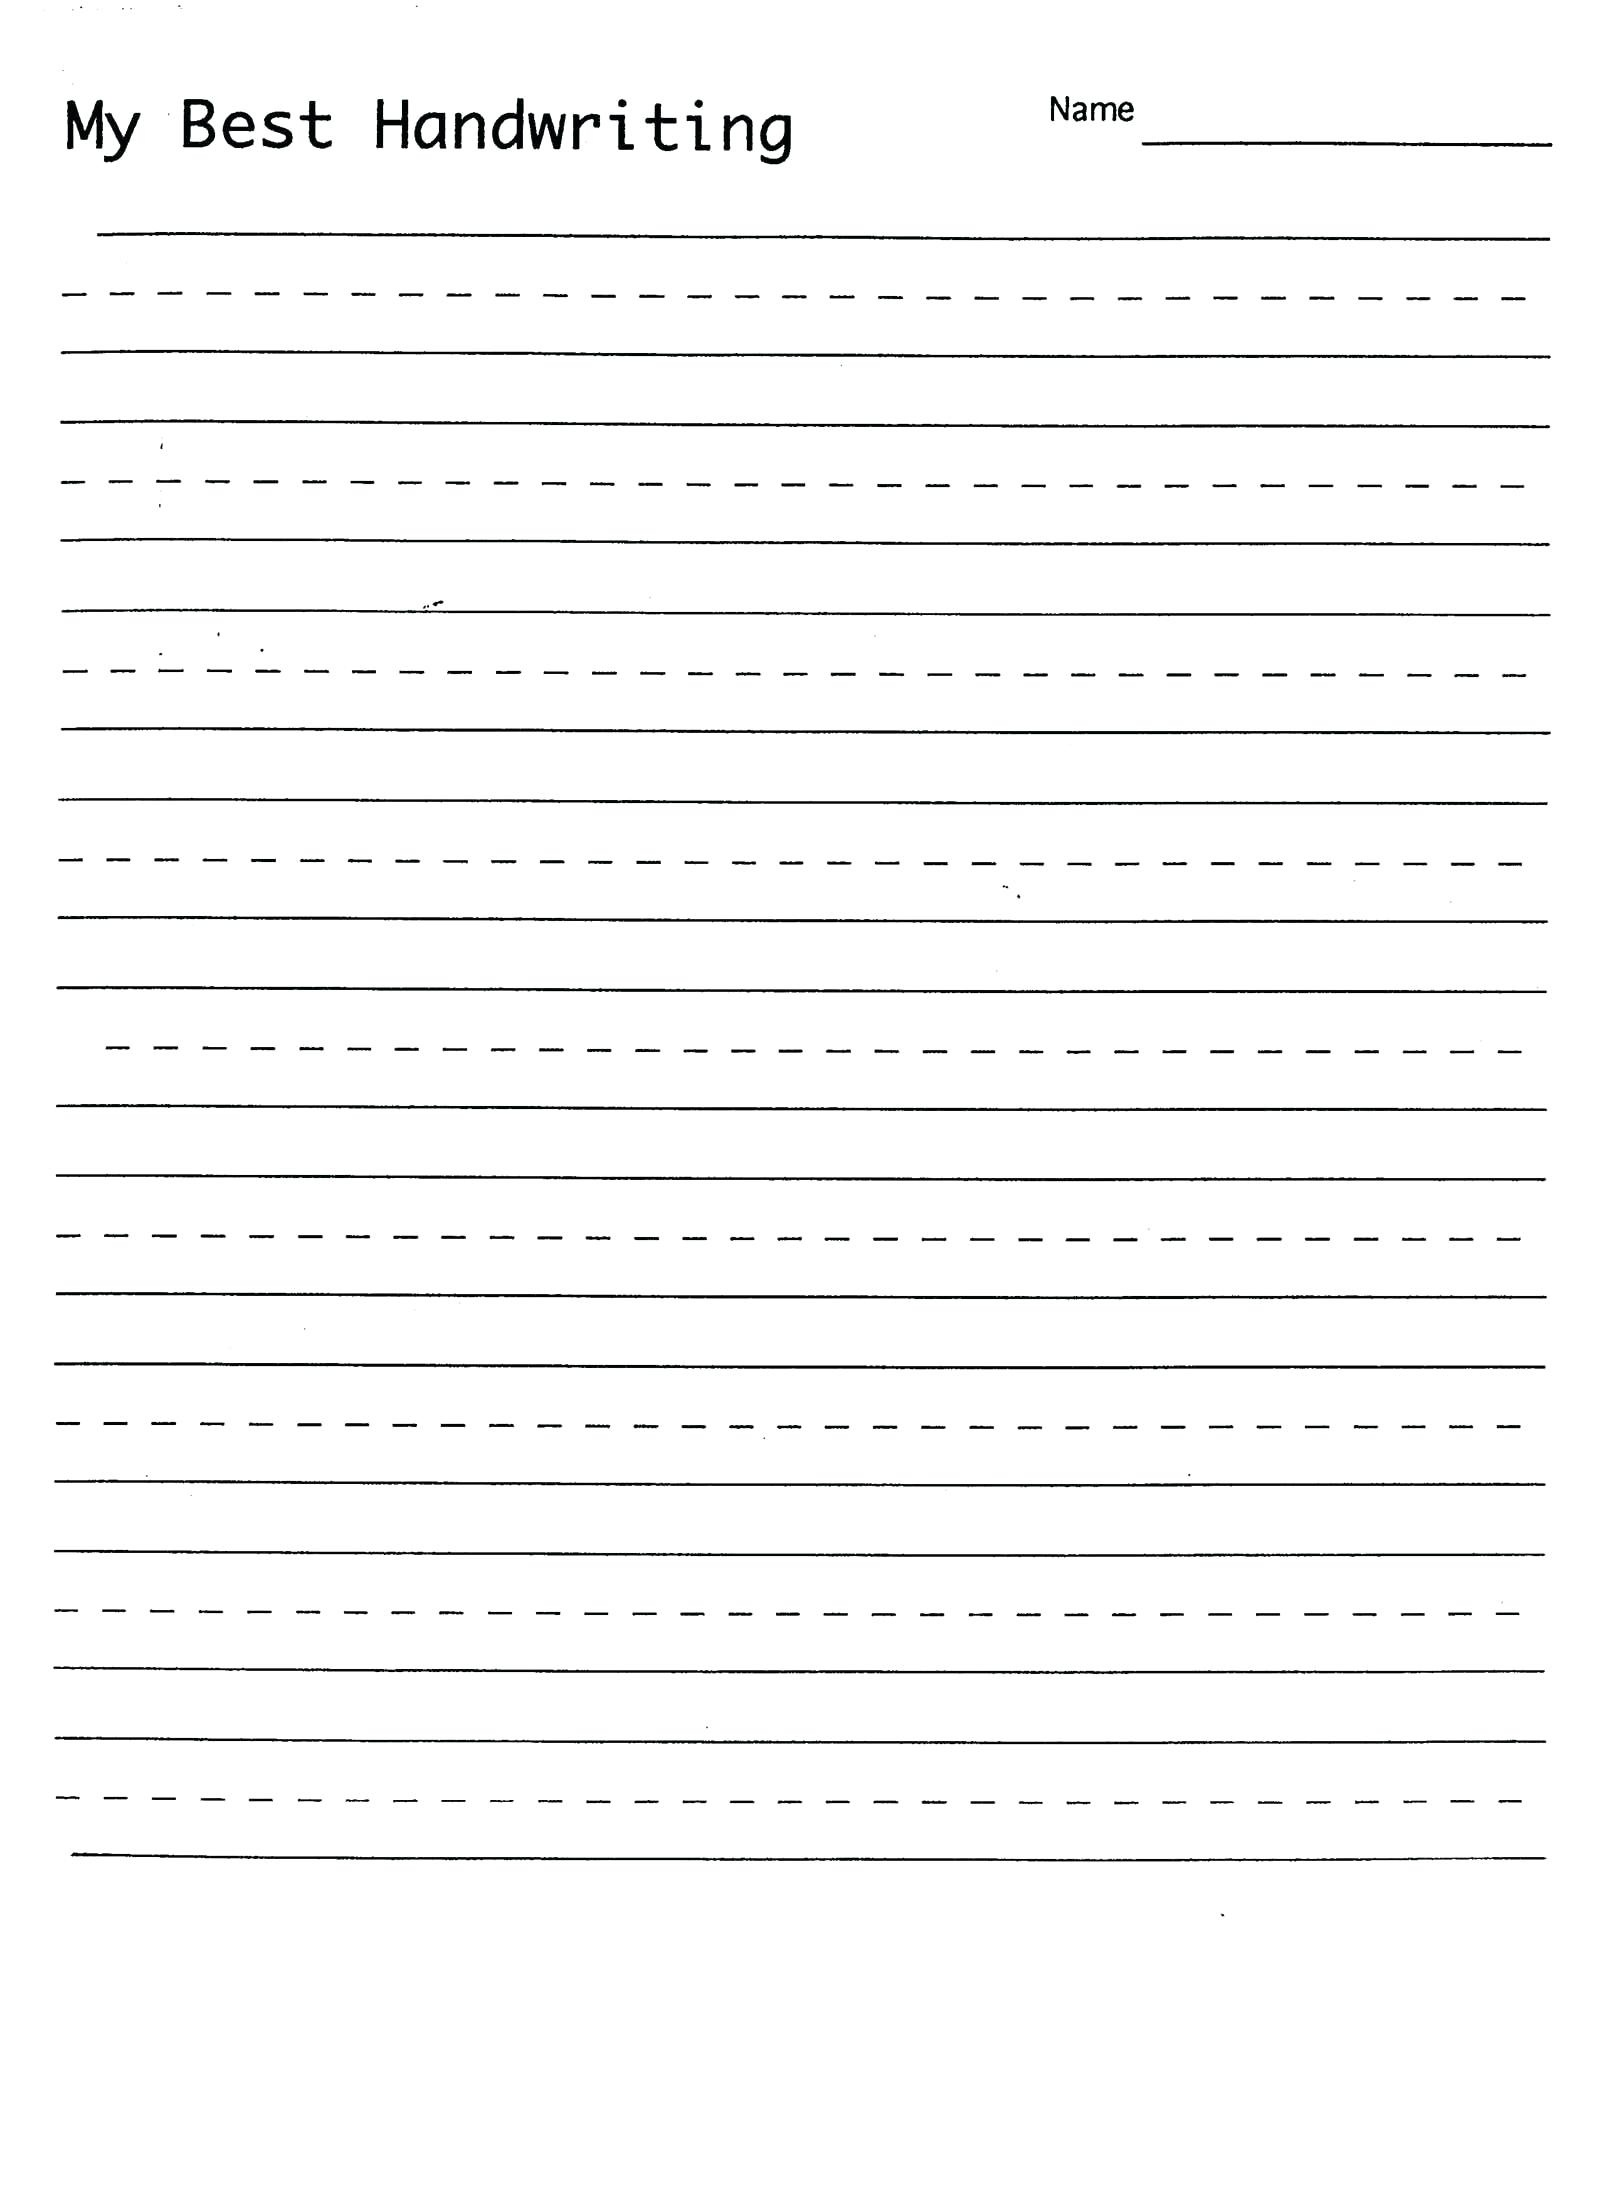 Free Cursive Sheets Free Printable Cursive Handwriting Worksheets - Free Printable Practice Name Writing Sheets